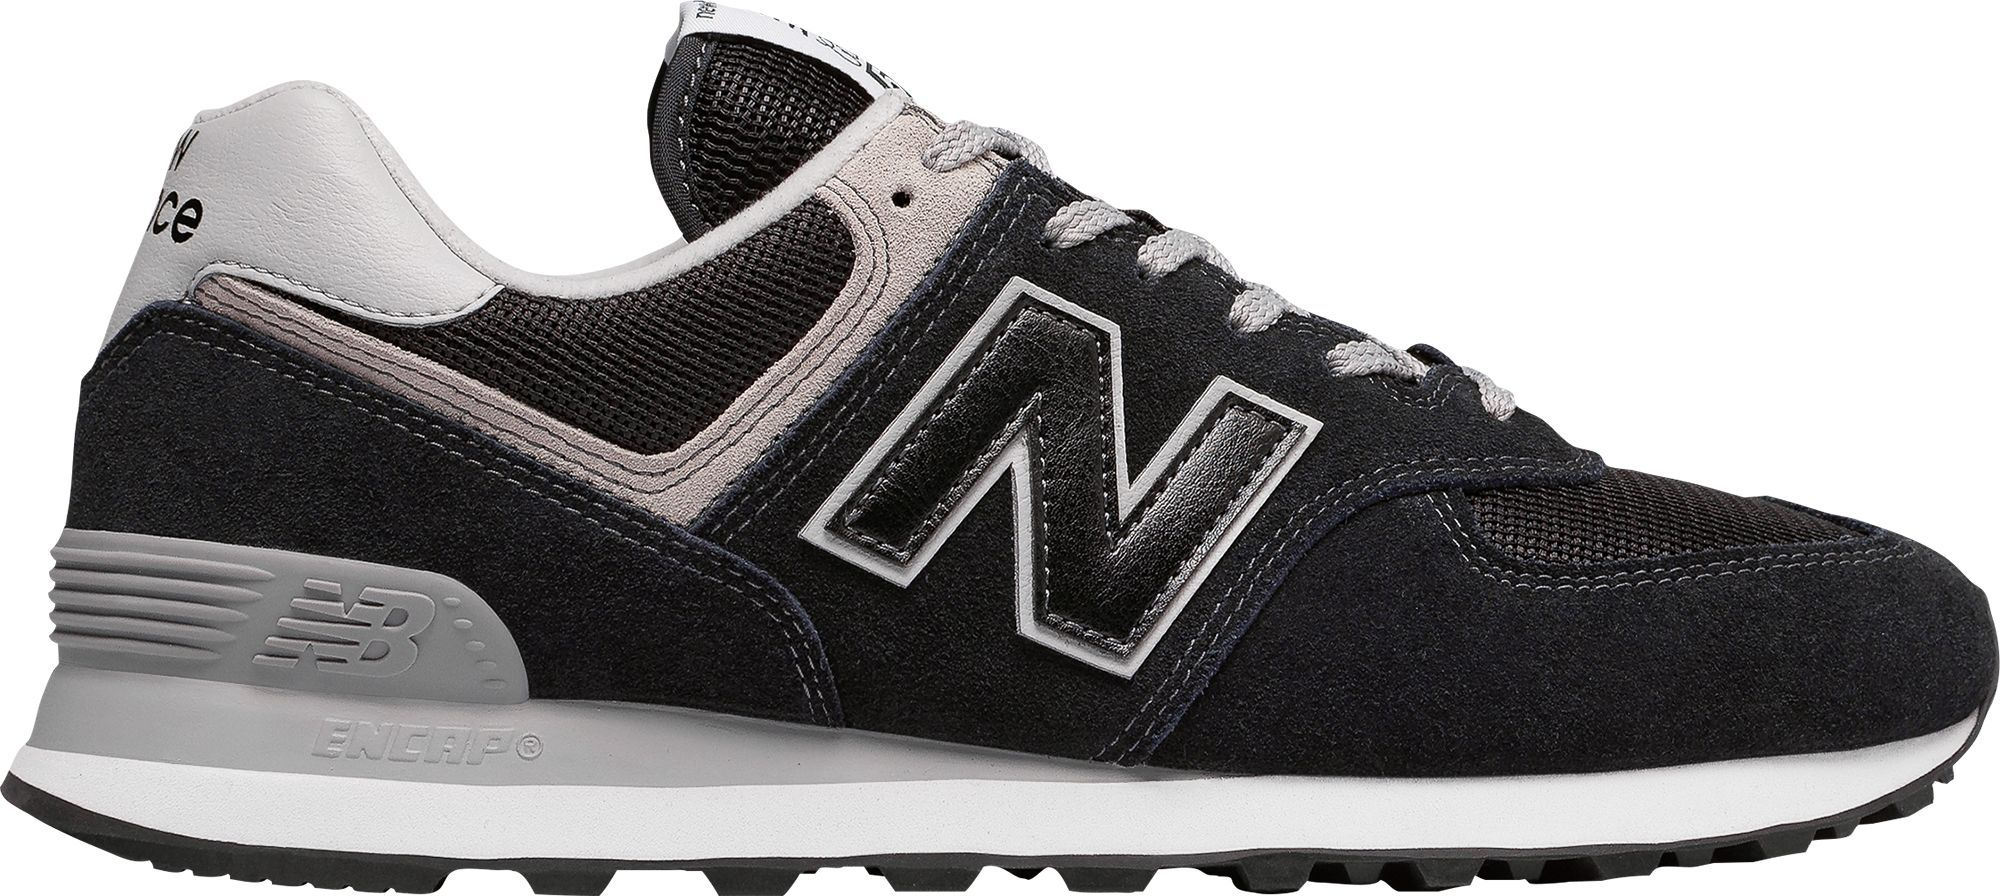 New Balance Men S 574 Casual Shoes Size 11 5 Black New Balance Men New Balance Sneakers Sneakers Fashion